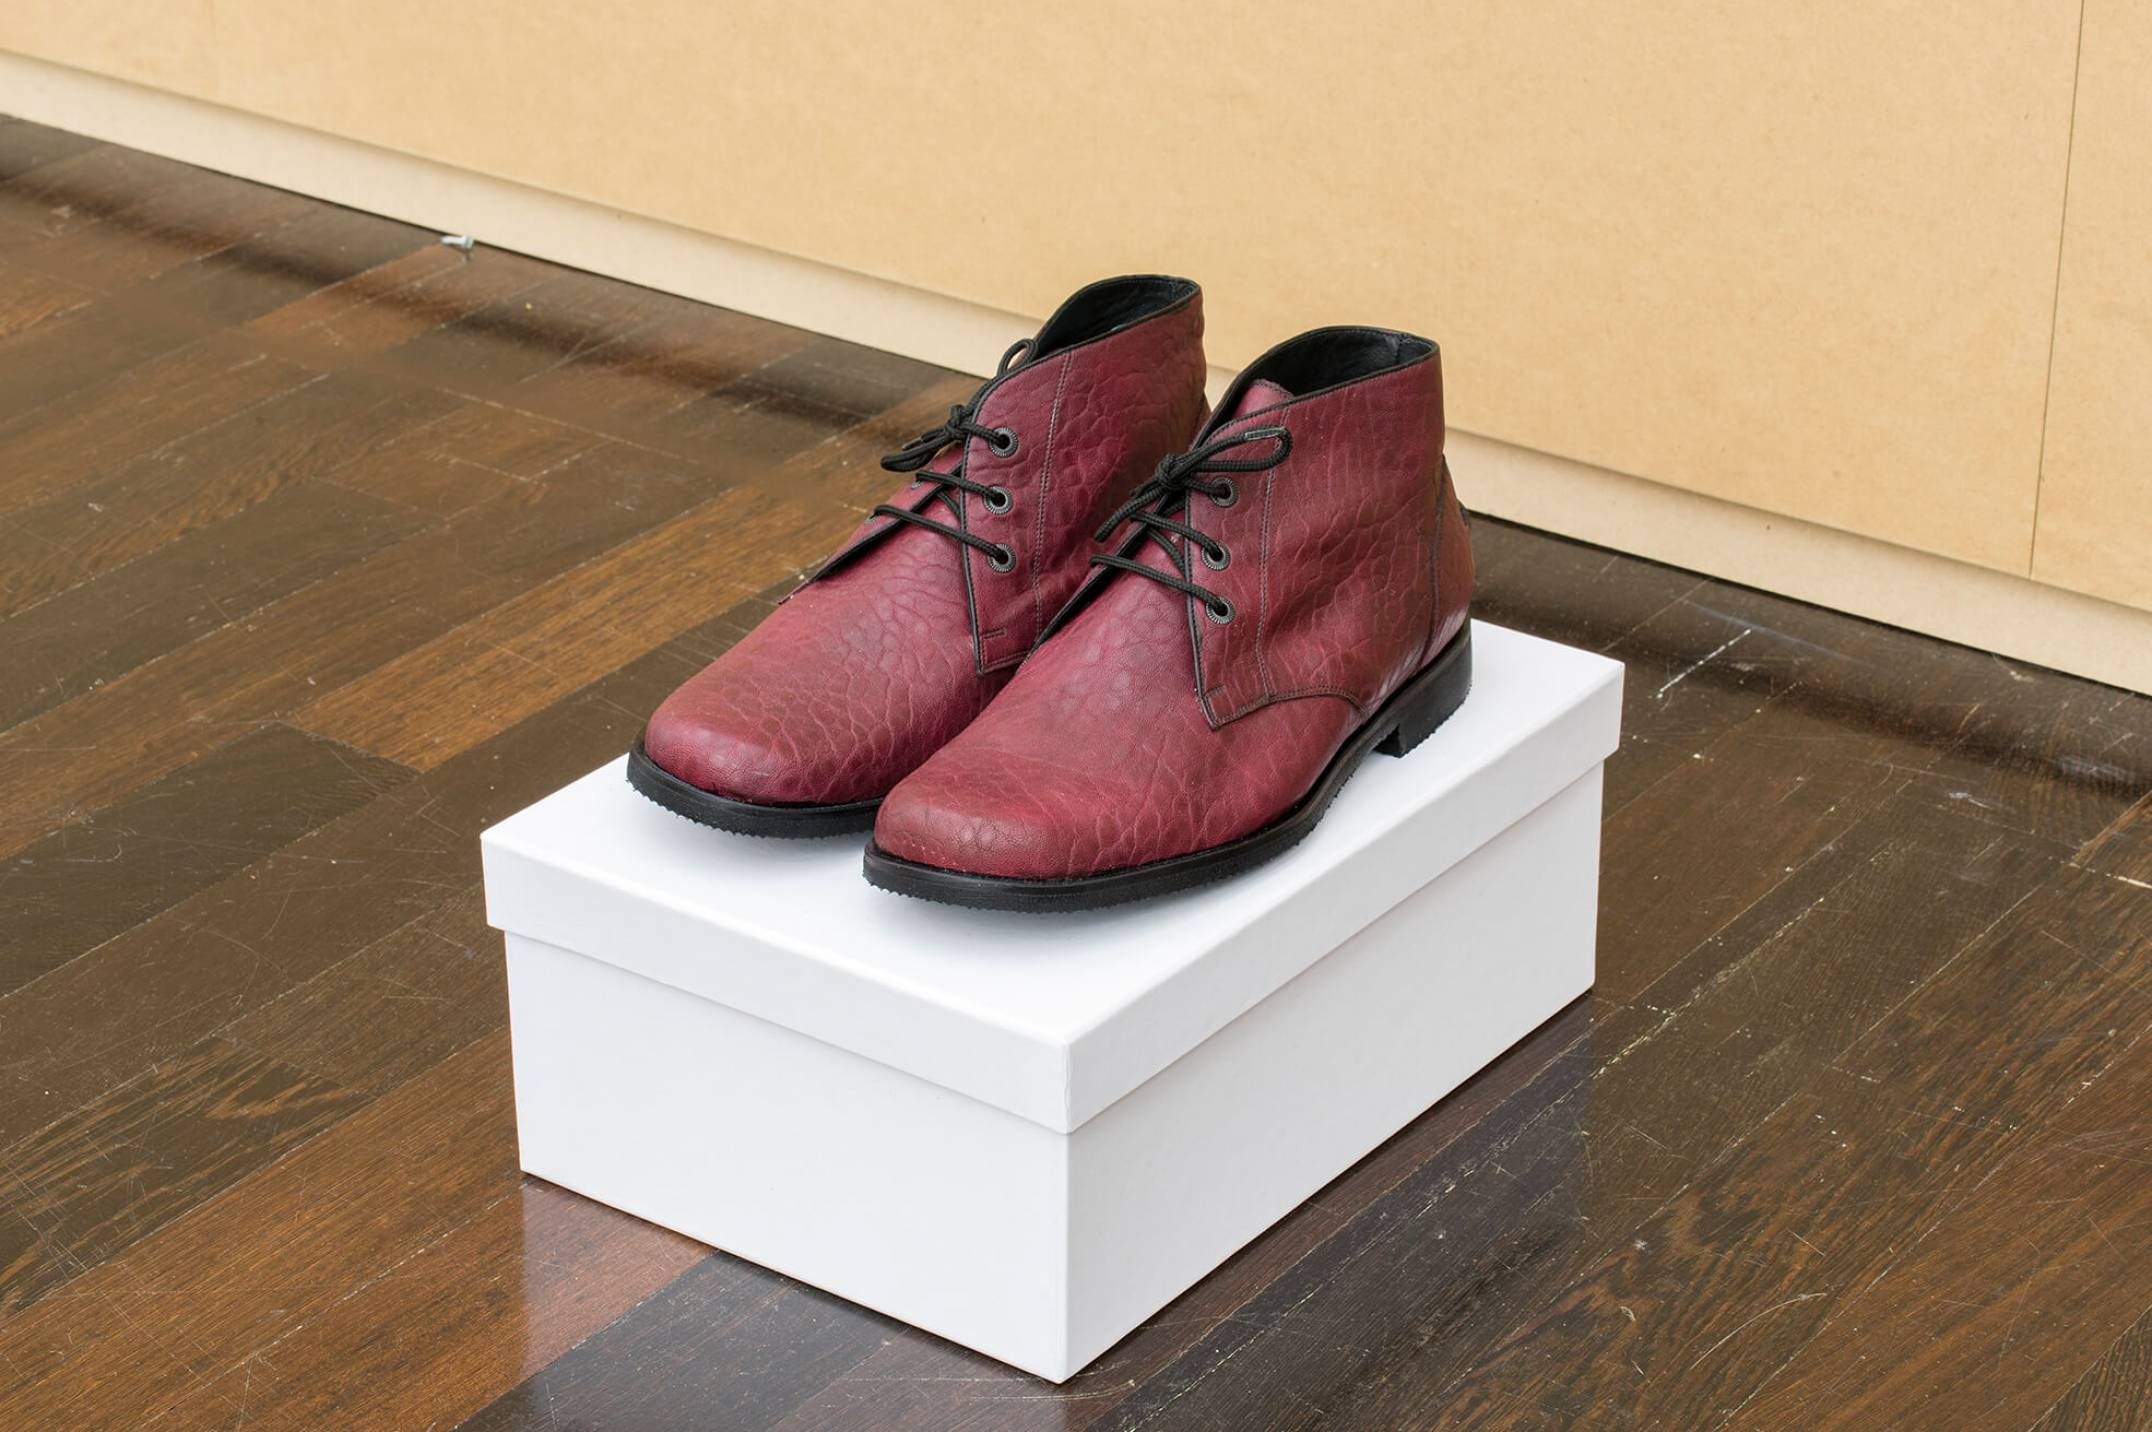 Christodoulos Panayiotou, <em>untitled</em>, 2015, 1 pair of handmade leather shoes and 1 cardboard shoe box, variable dimensions - Mendes Wood DM